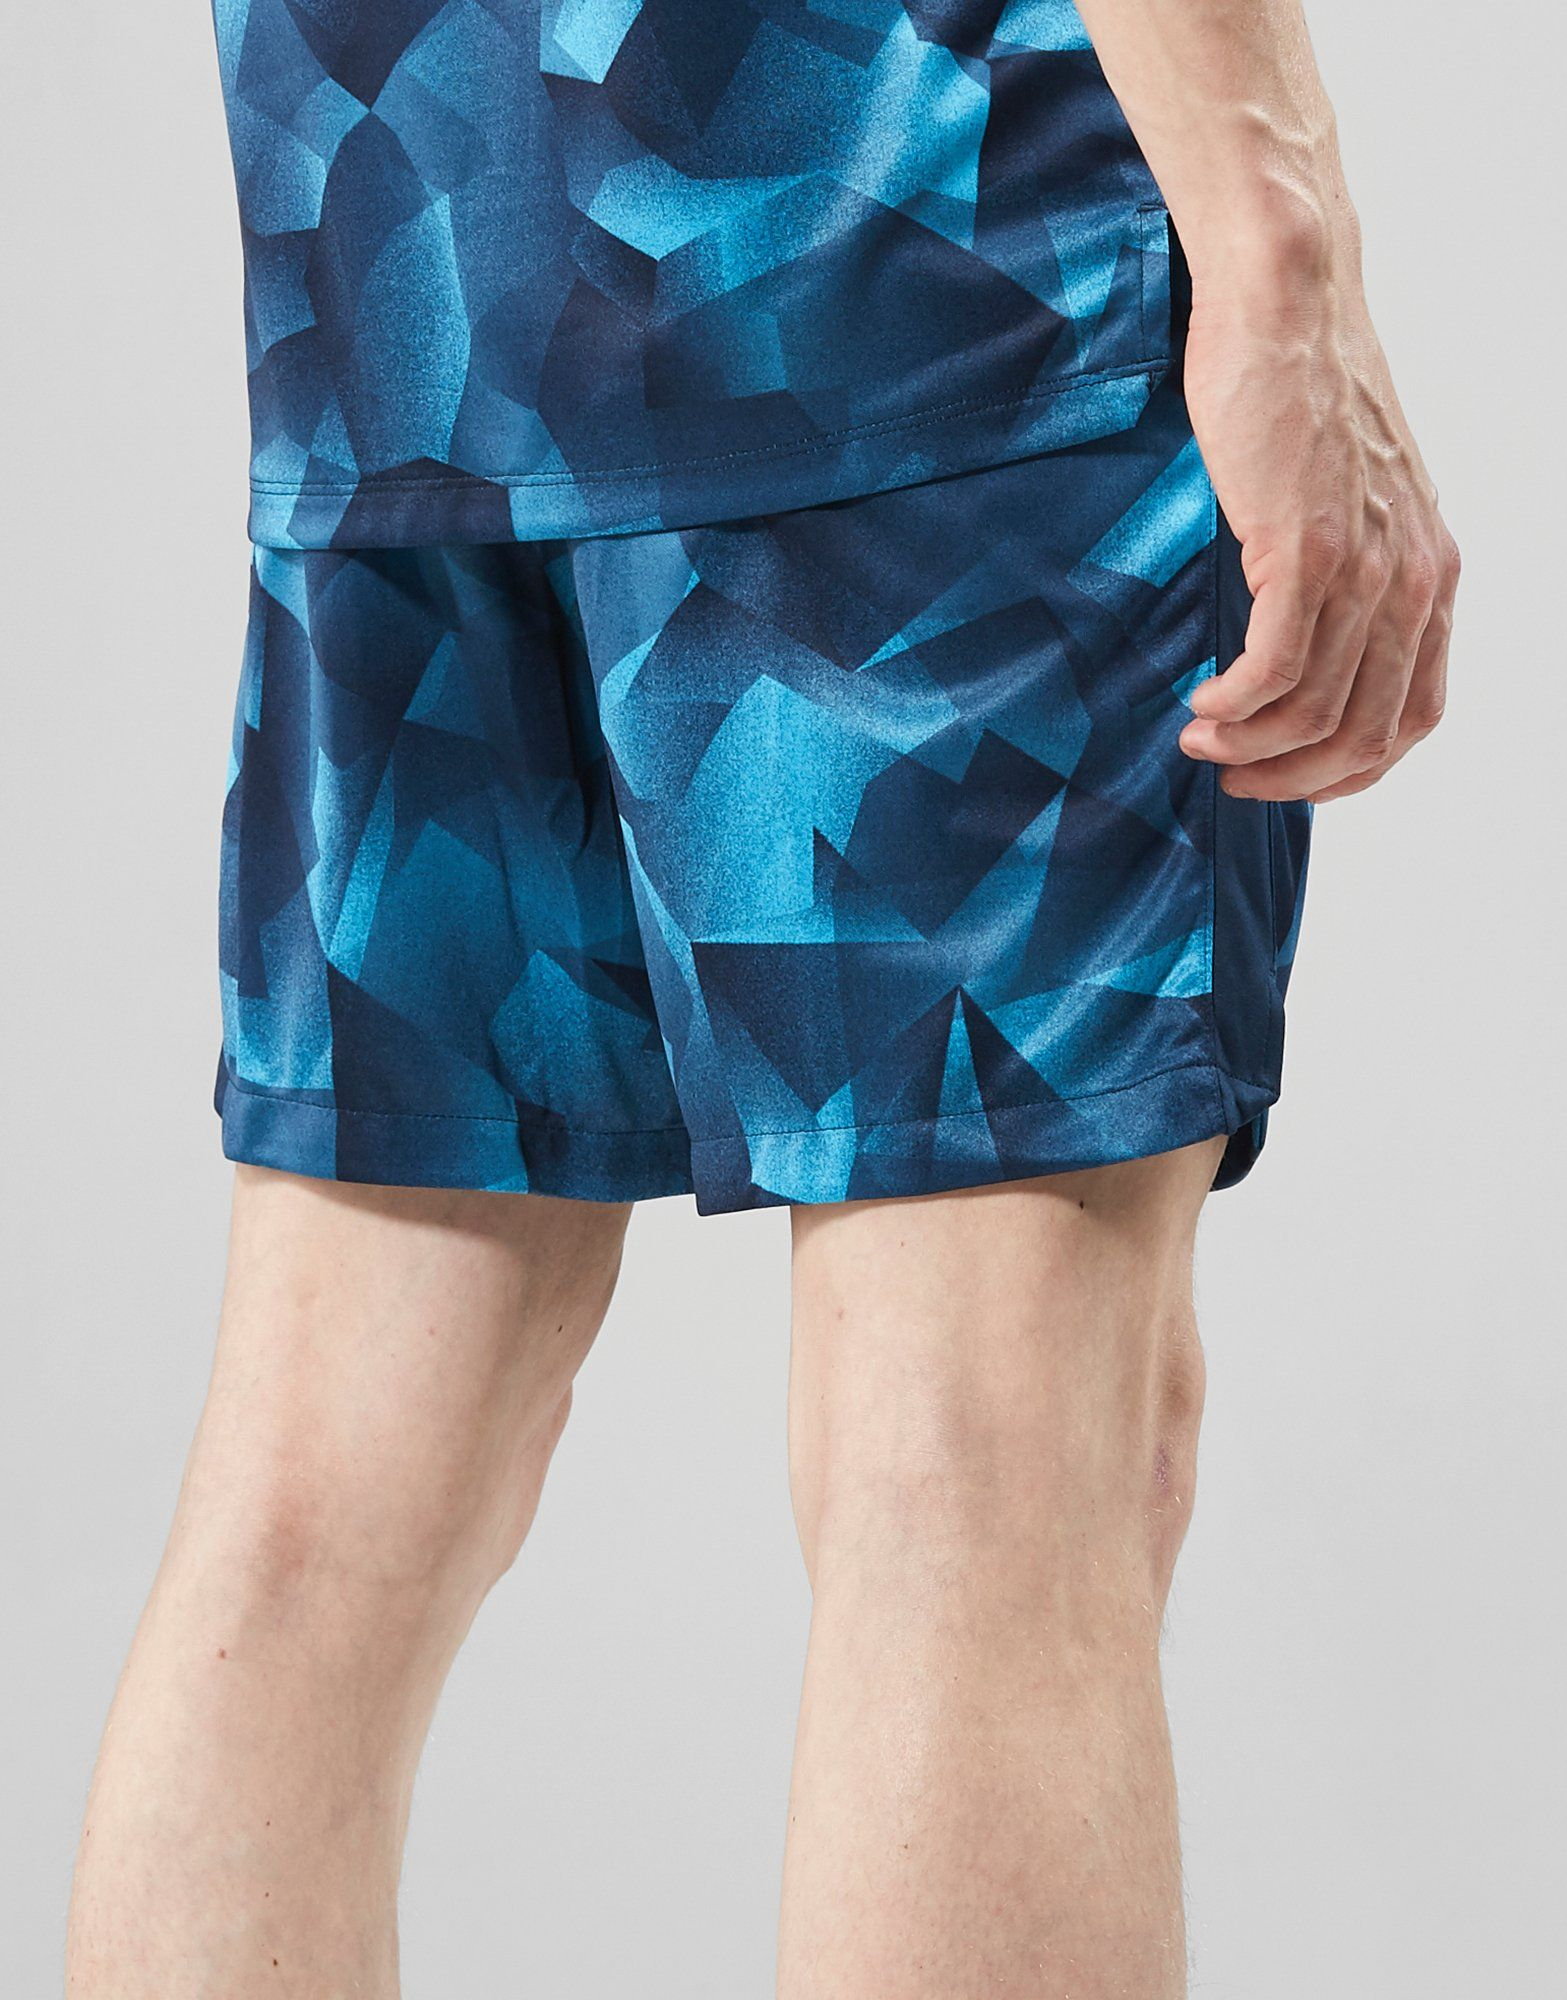 Nike Squad All Over Print Shorts Blau Neue Stile Outlet Großer Verkauf EhGK4ZHd